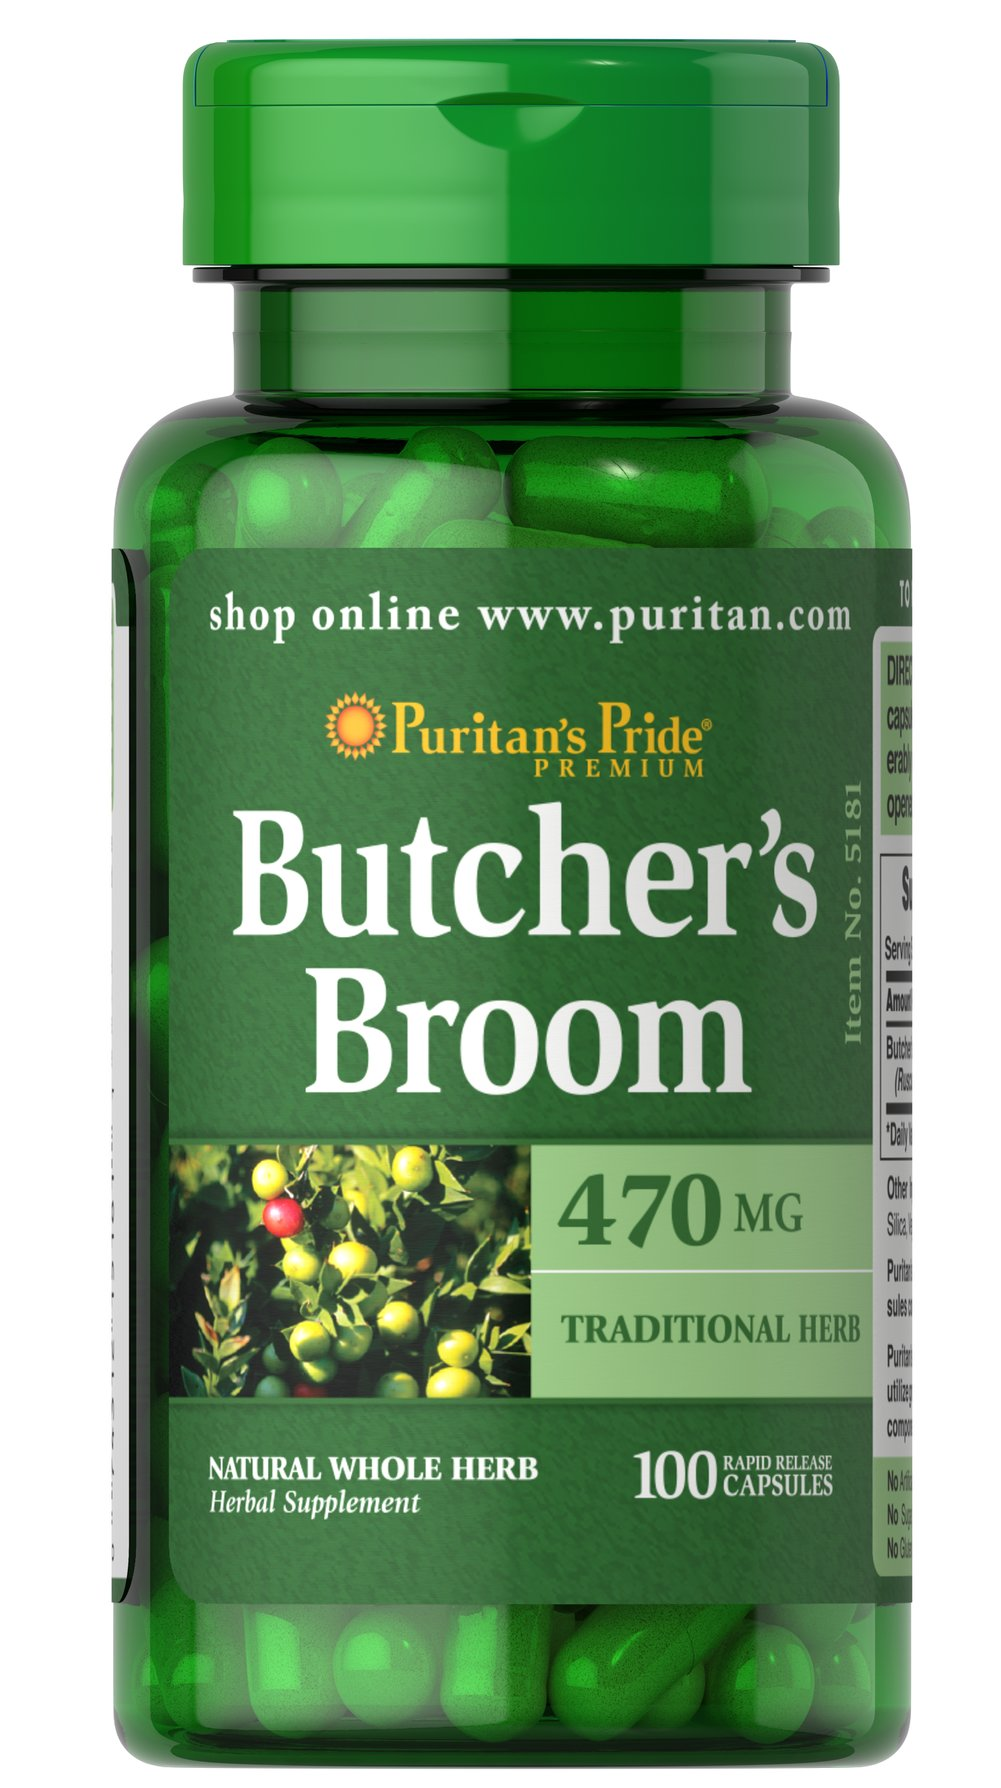 Butcher's Broom 470 mg  100 Capsules 470 mg $11.99